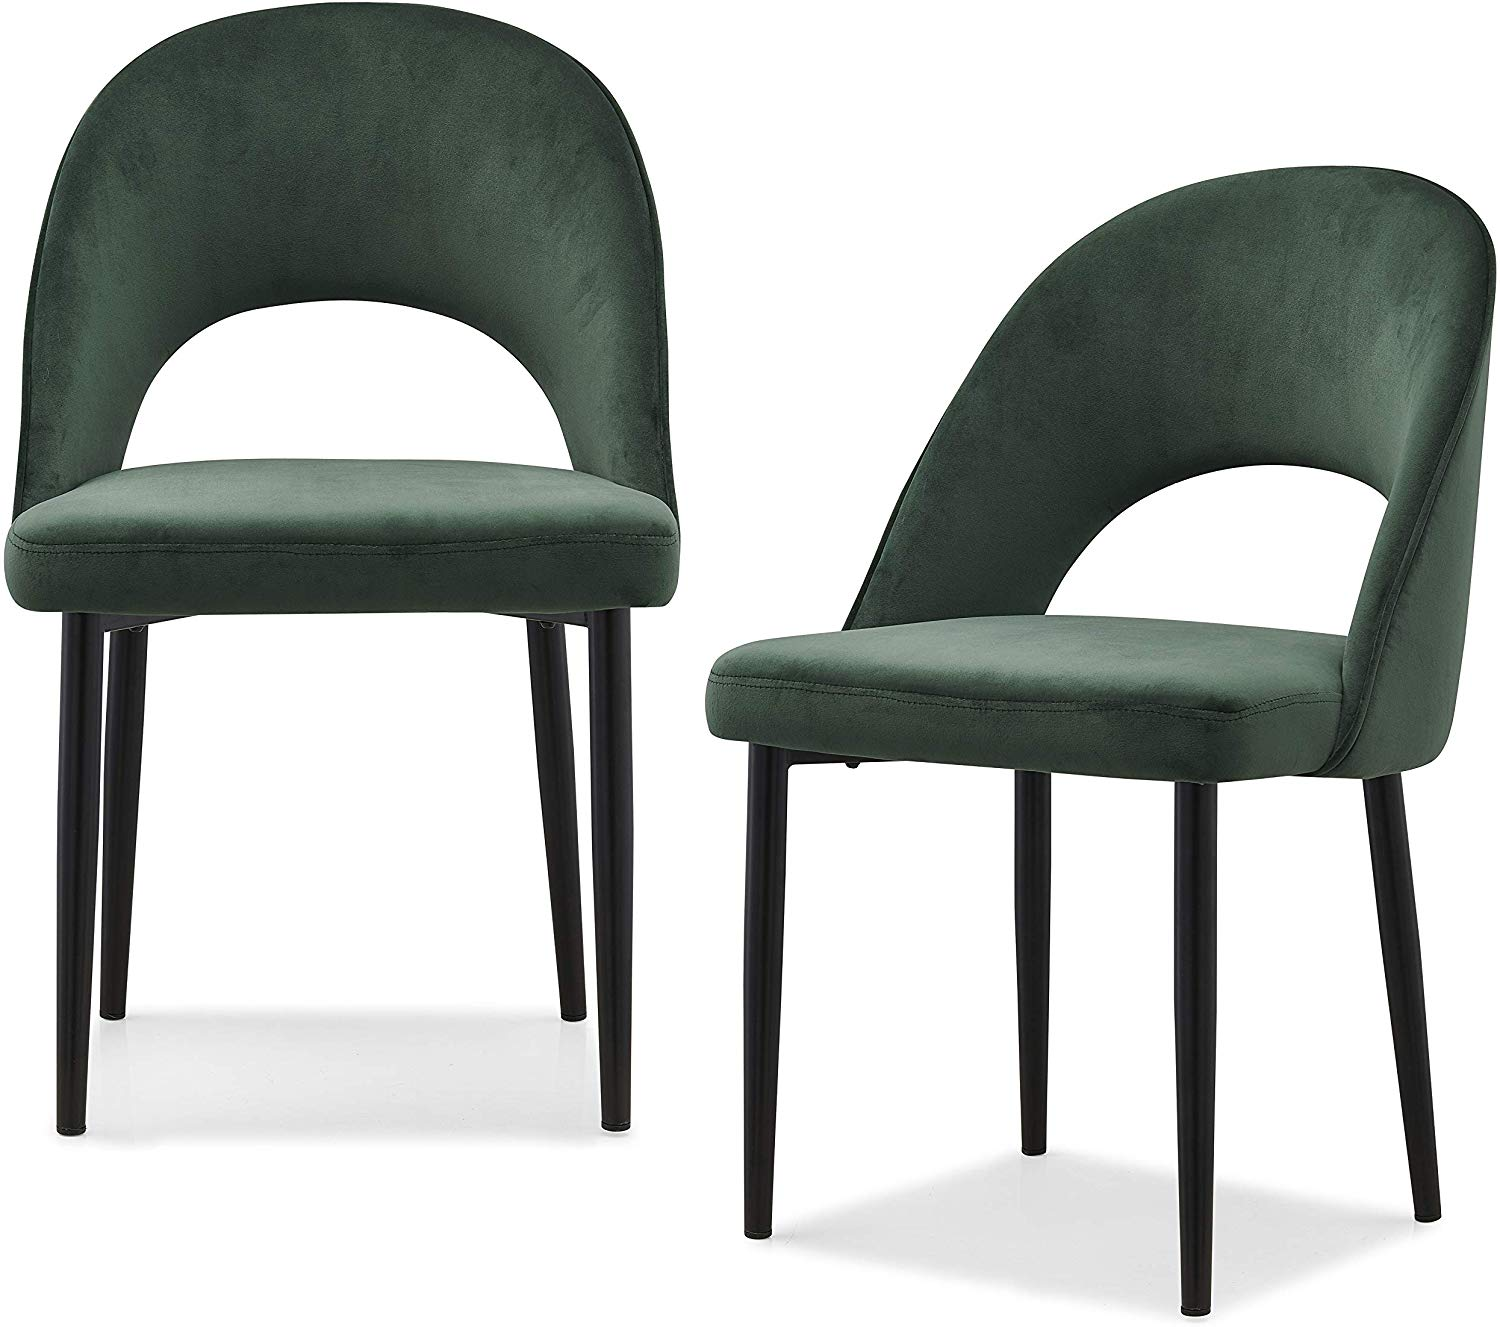 Calgary Set of 2 Velvet Dining Chairs in Green 1